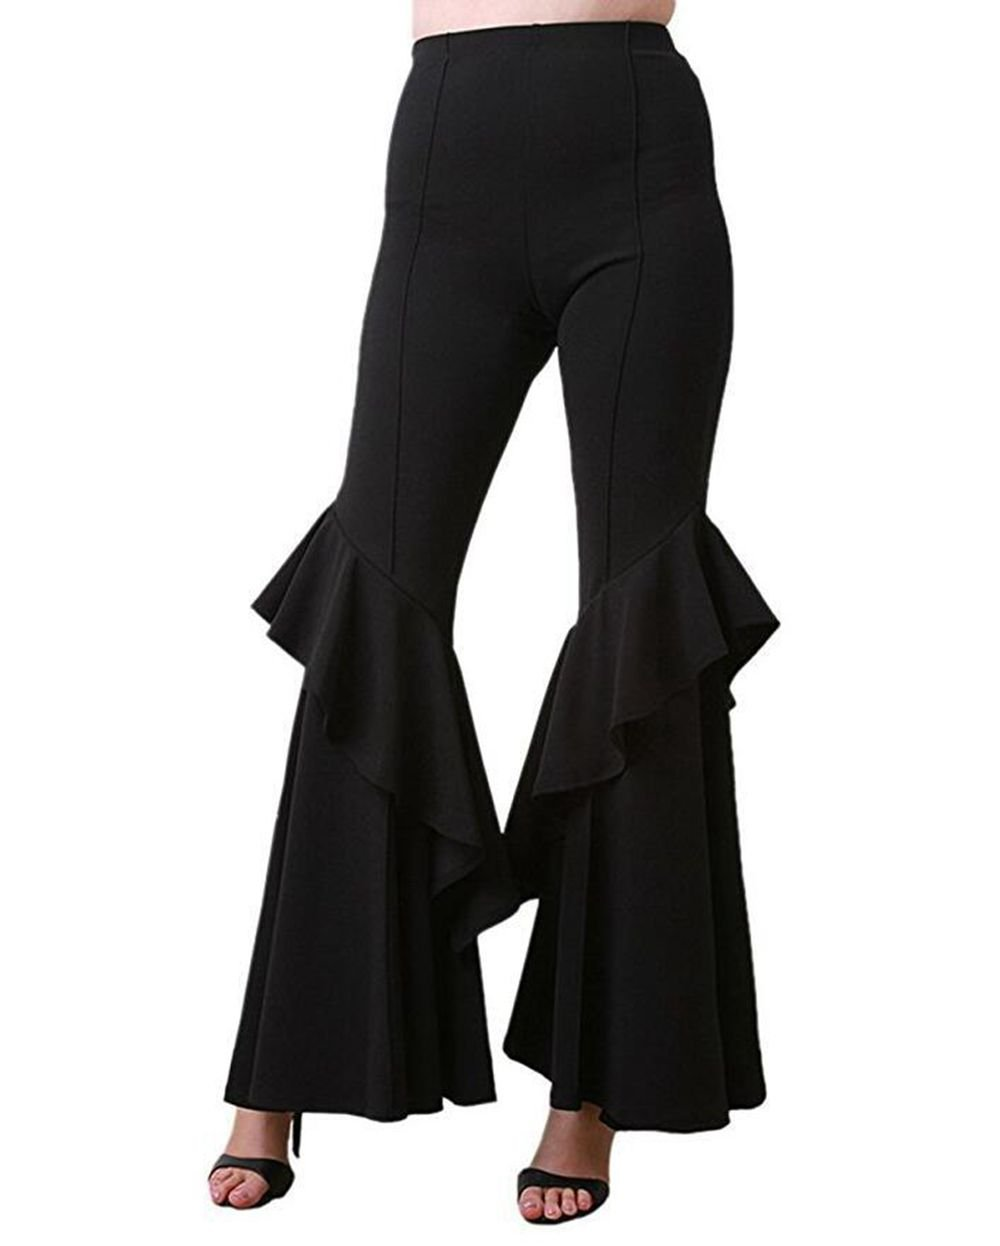 VERTTOP Women High Waist Plain Long Full Length Wide Leg Ruffle Falbala Bell Bottom Woman Pant Black S